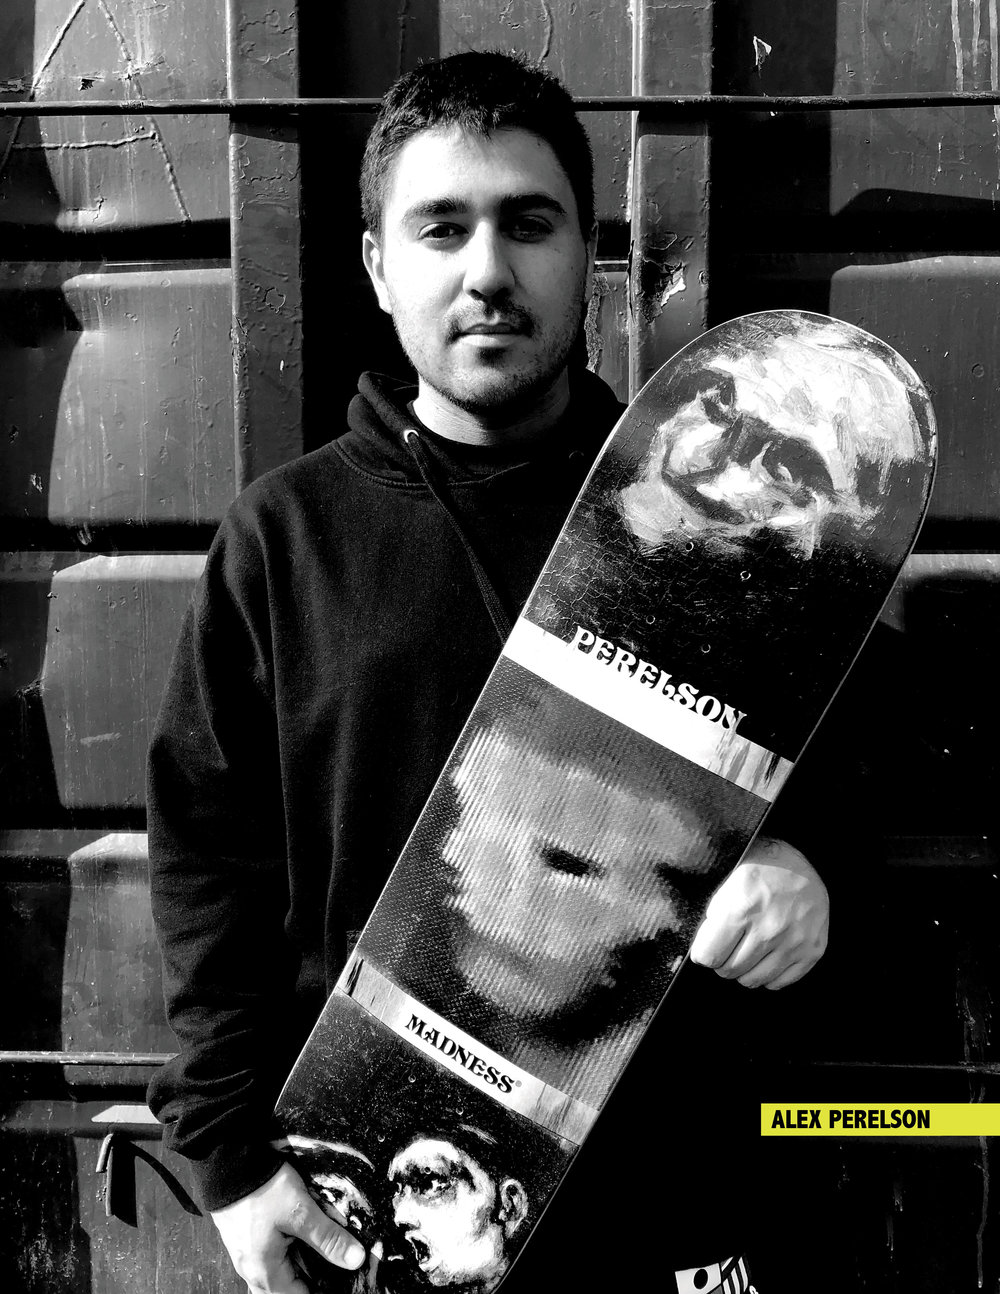 Madness_Spring_197_Alex_Perelson_skateboards.jpg